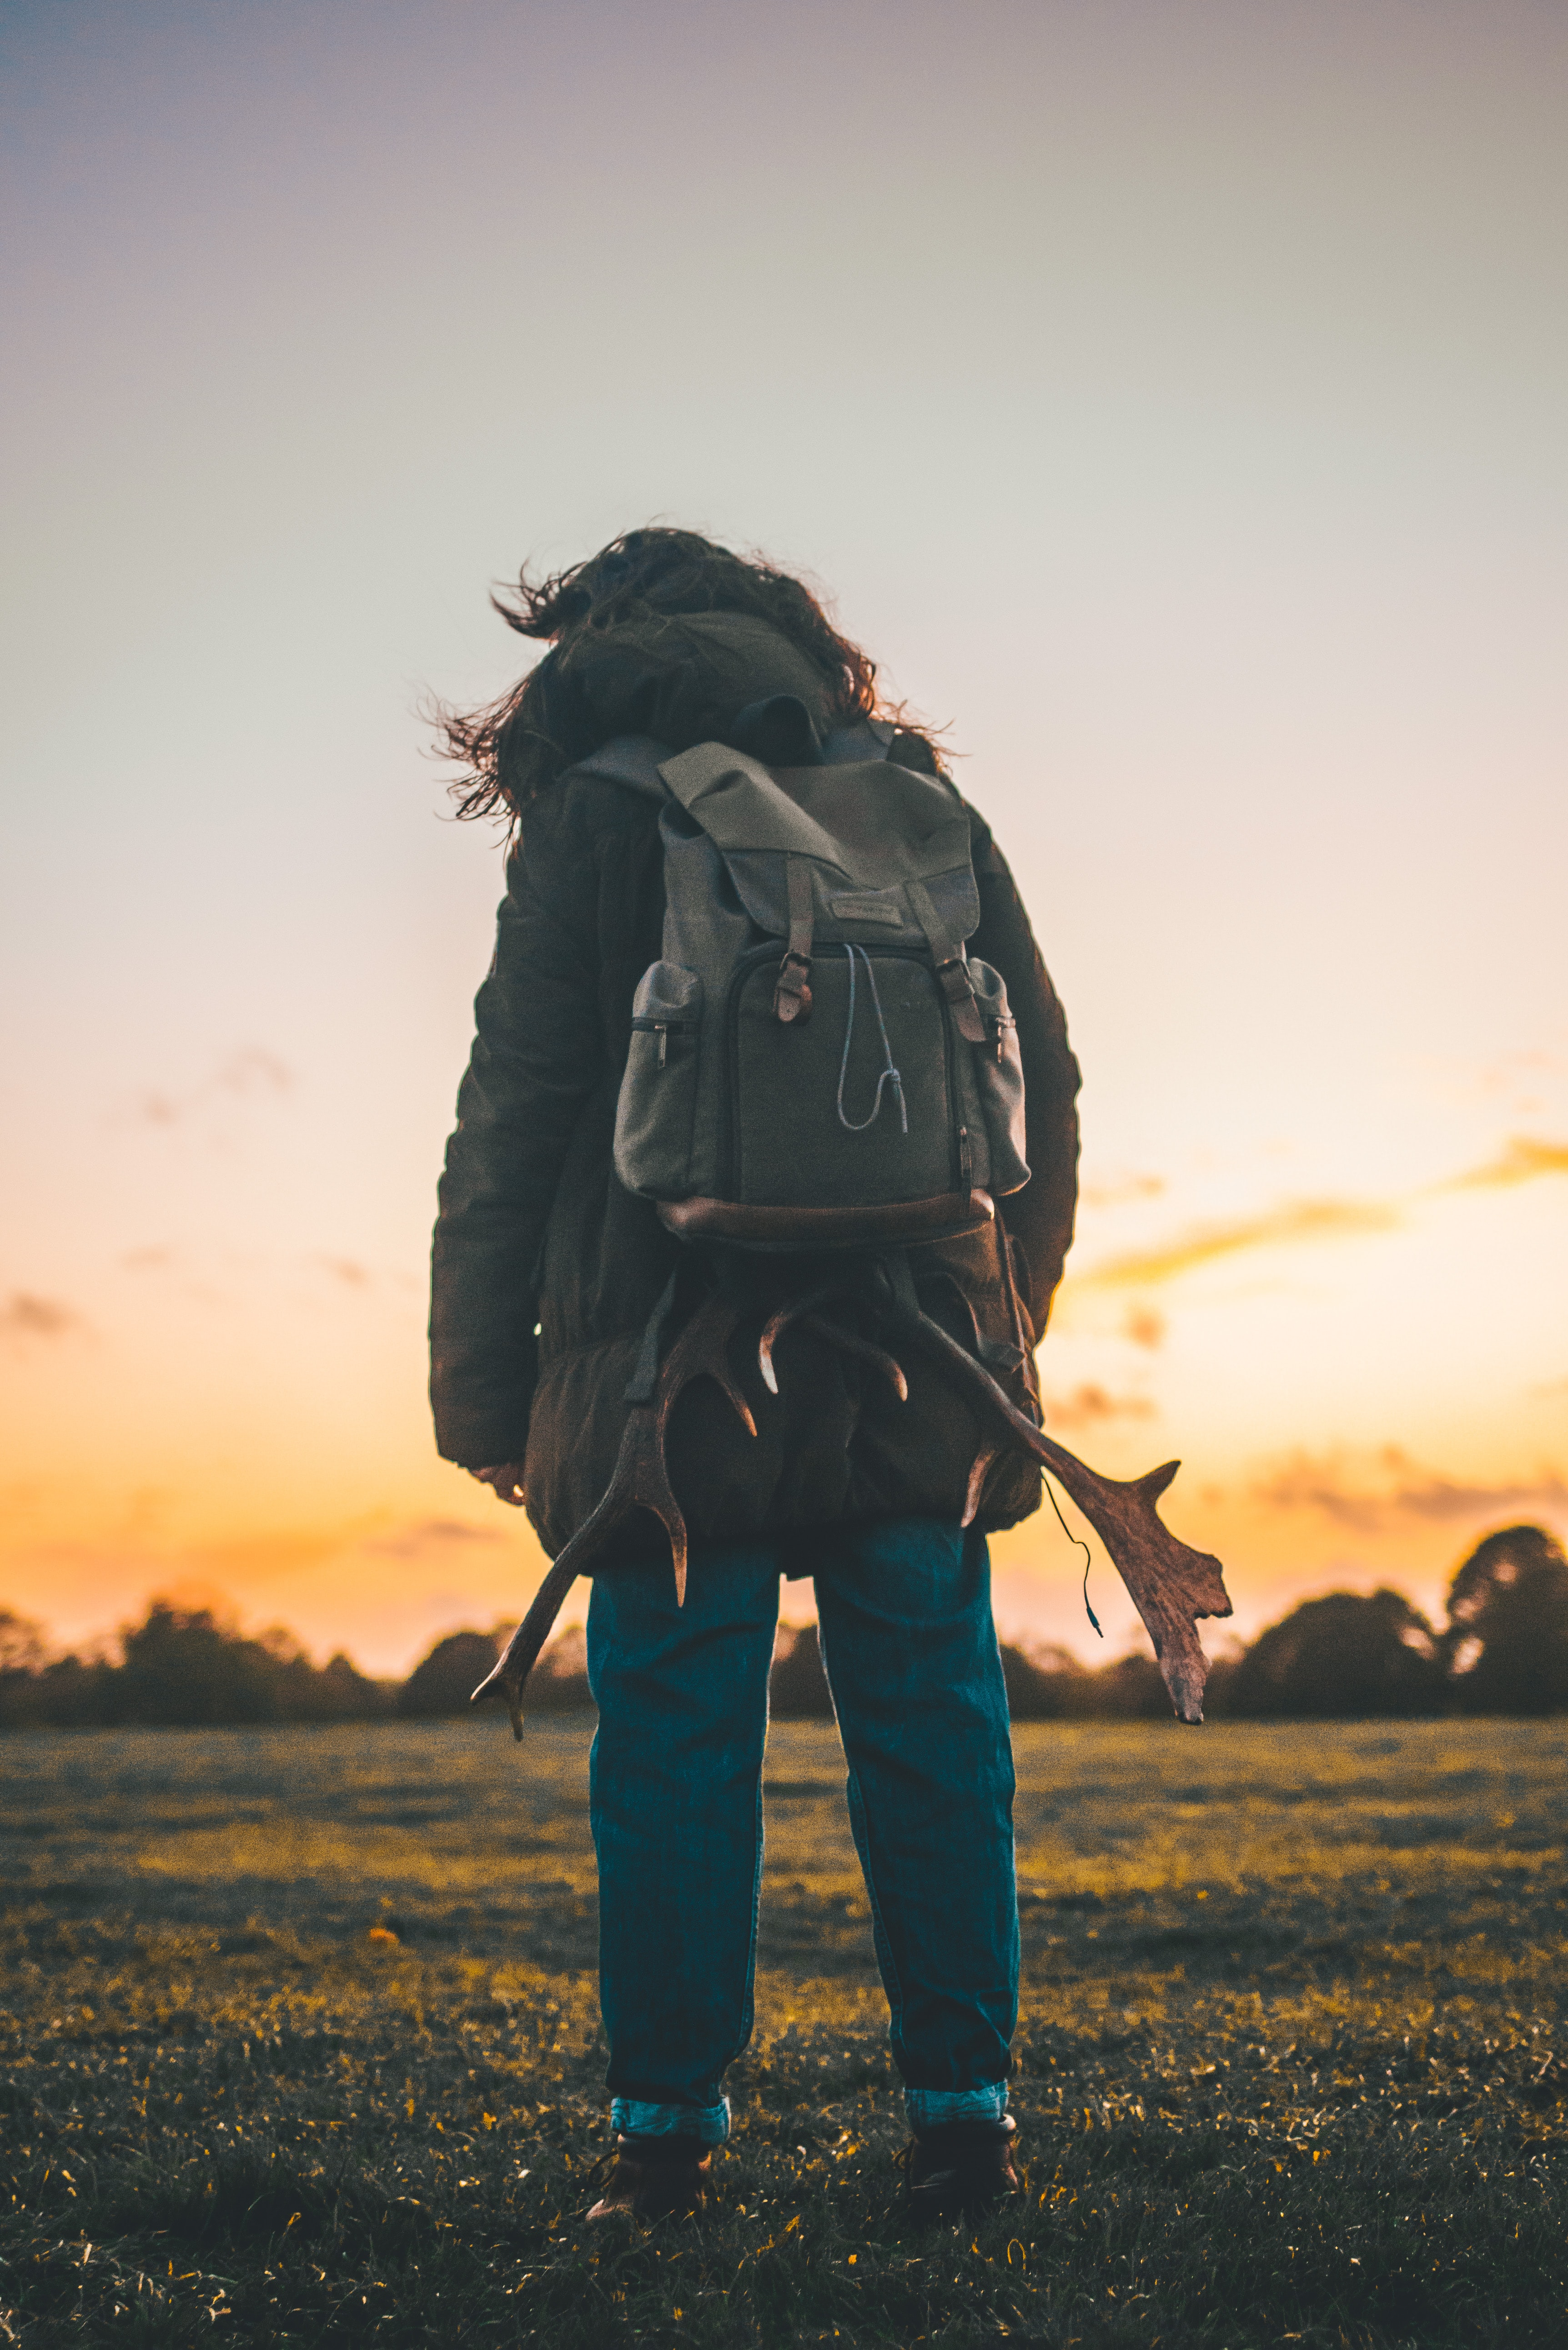 person wearing backpack standing on grass field